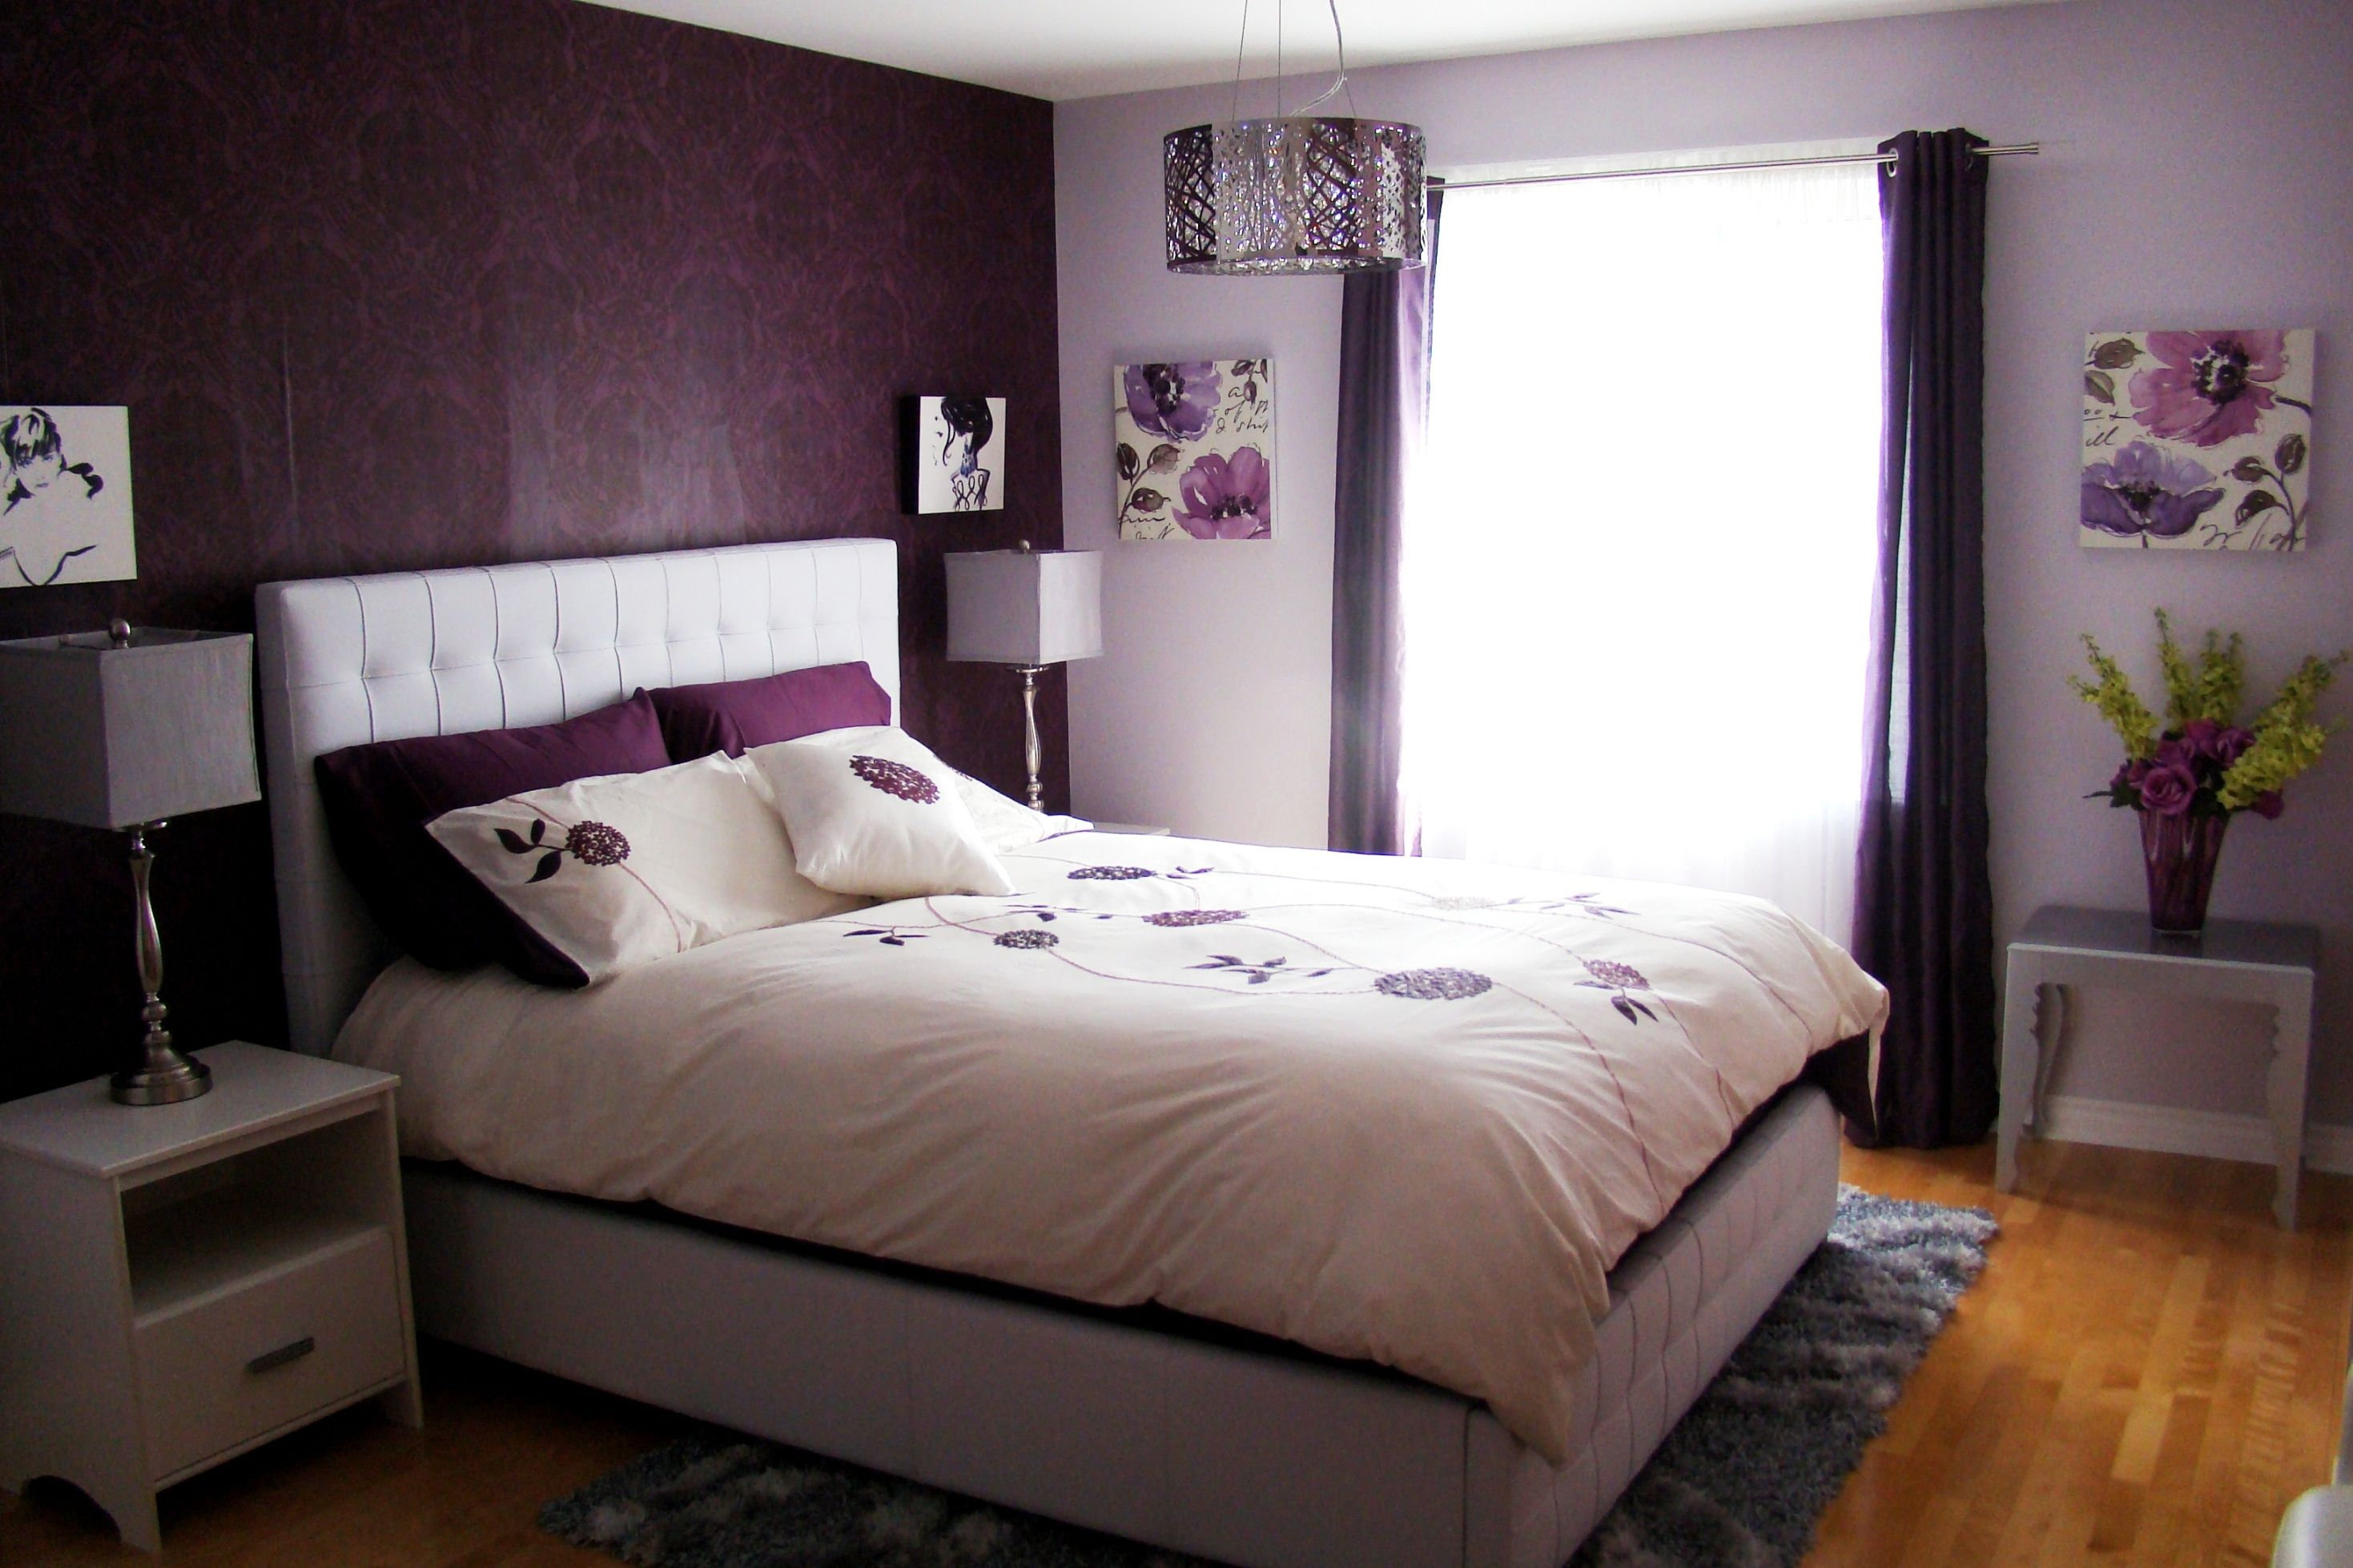 Captivating Small Bedroom Ideas With Purple Wallpaper And Grey Rectangular Rugs Under W Lila Schlafzimmer Schlafzimmer Design Schlafzimmer Ideen Für Frauen